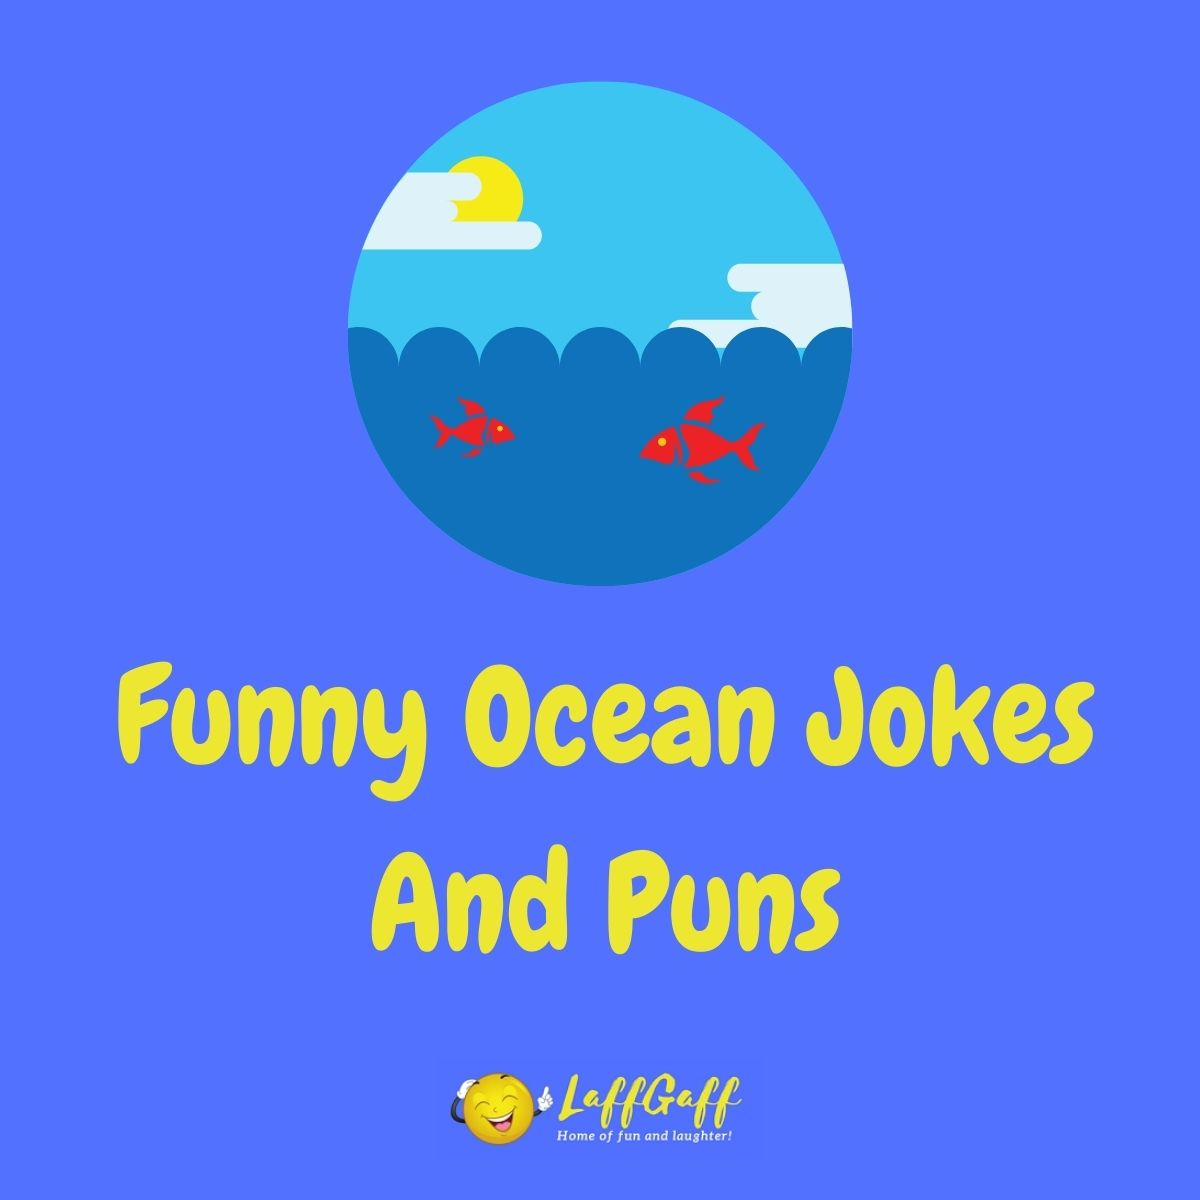 Featured image for a page of funny ocean jokes and puns.